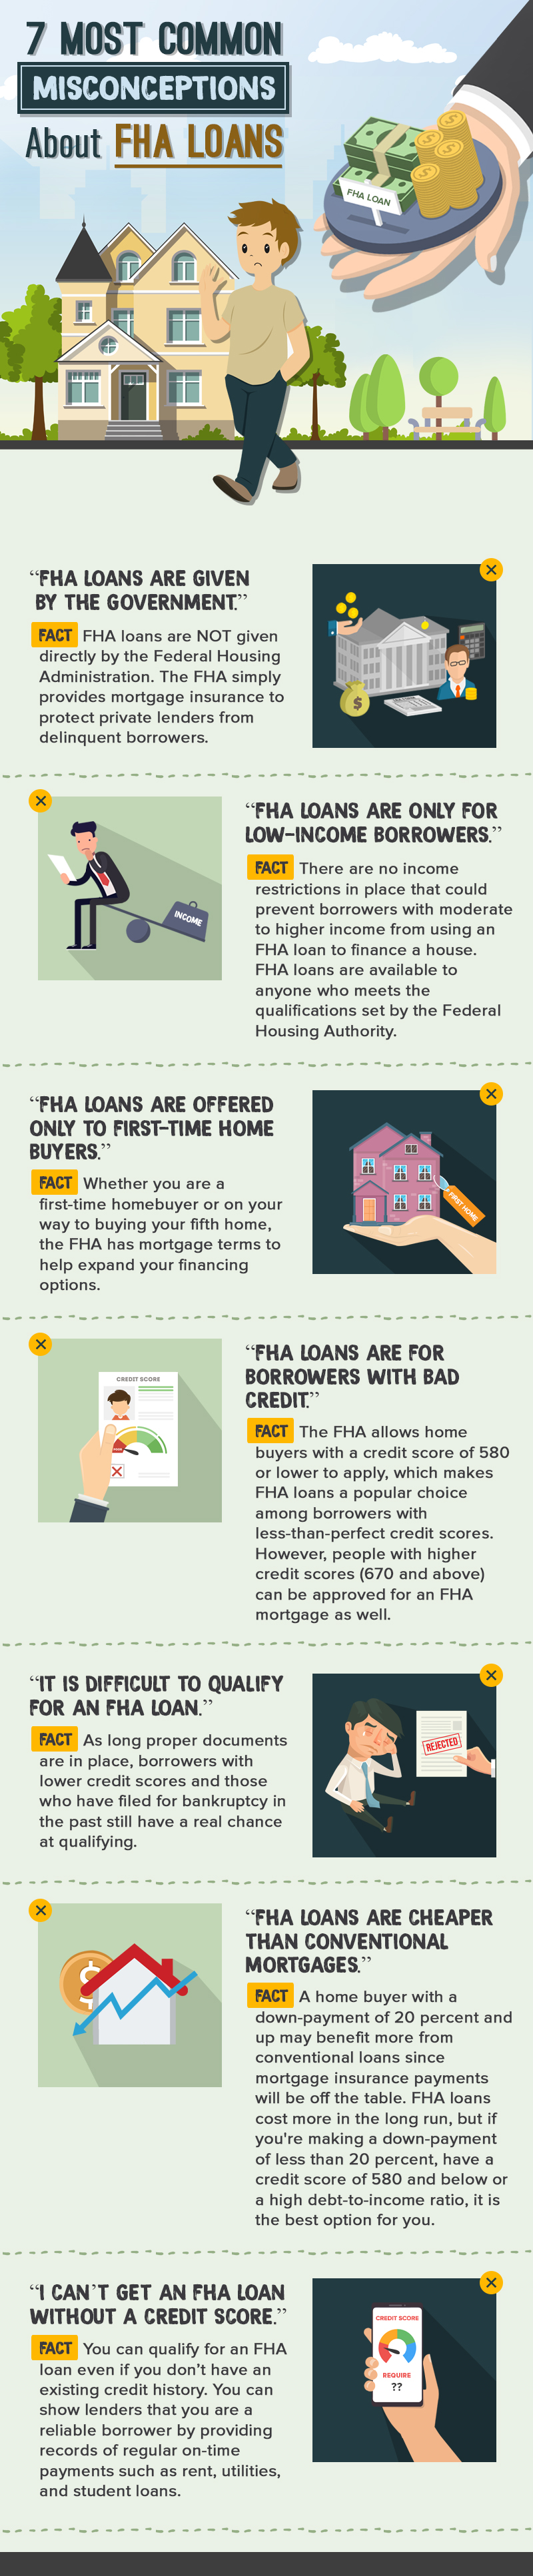 7 Misconceptions That Hinder People From Getting An FHA Loan